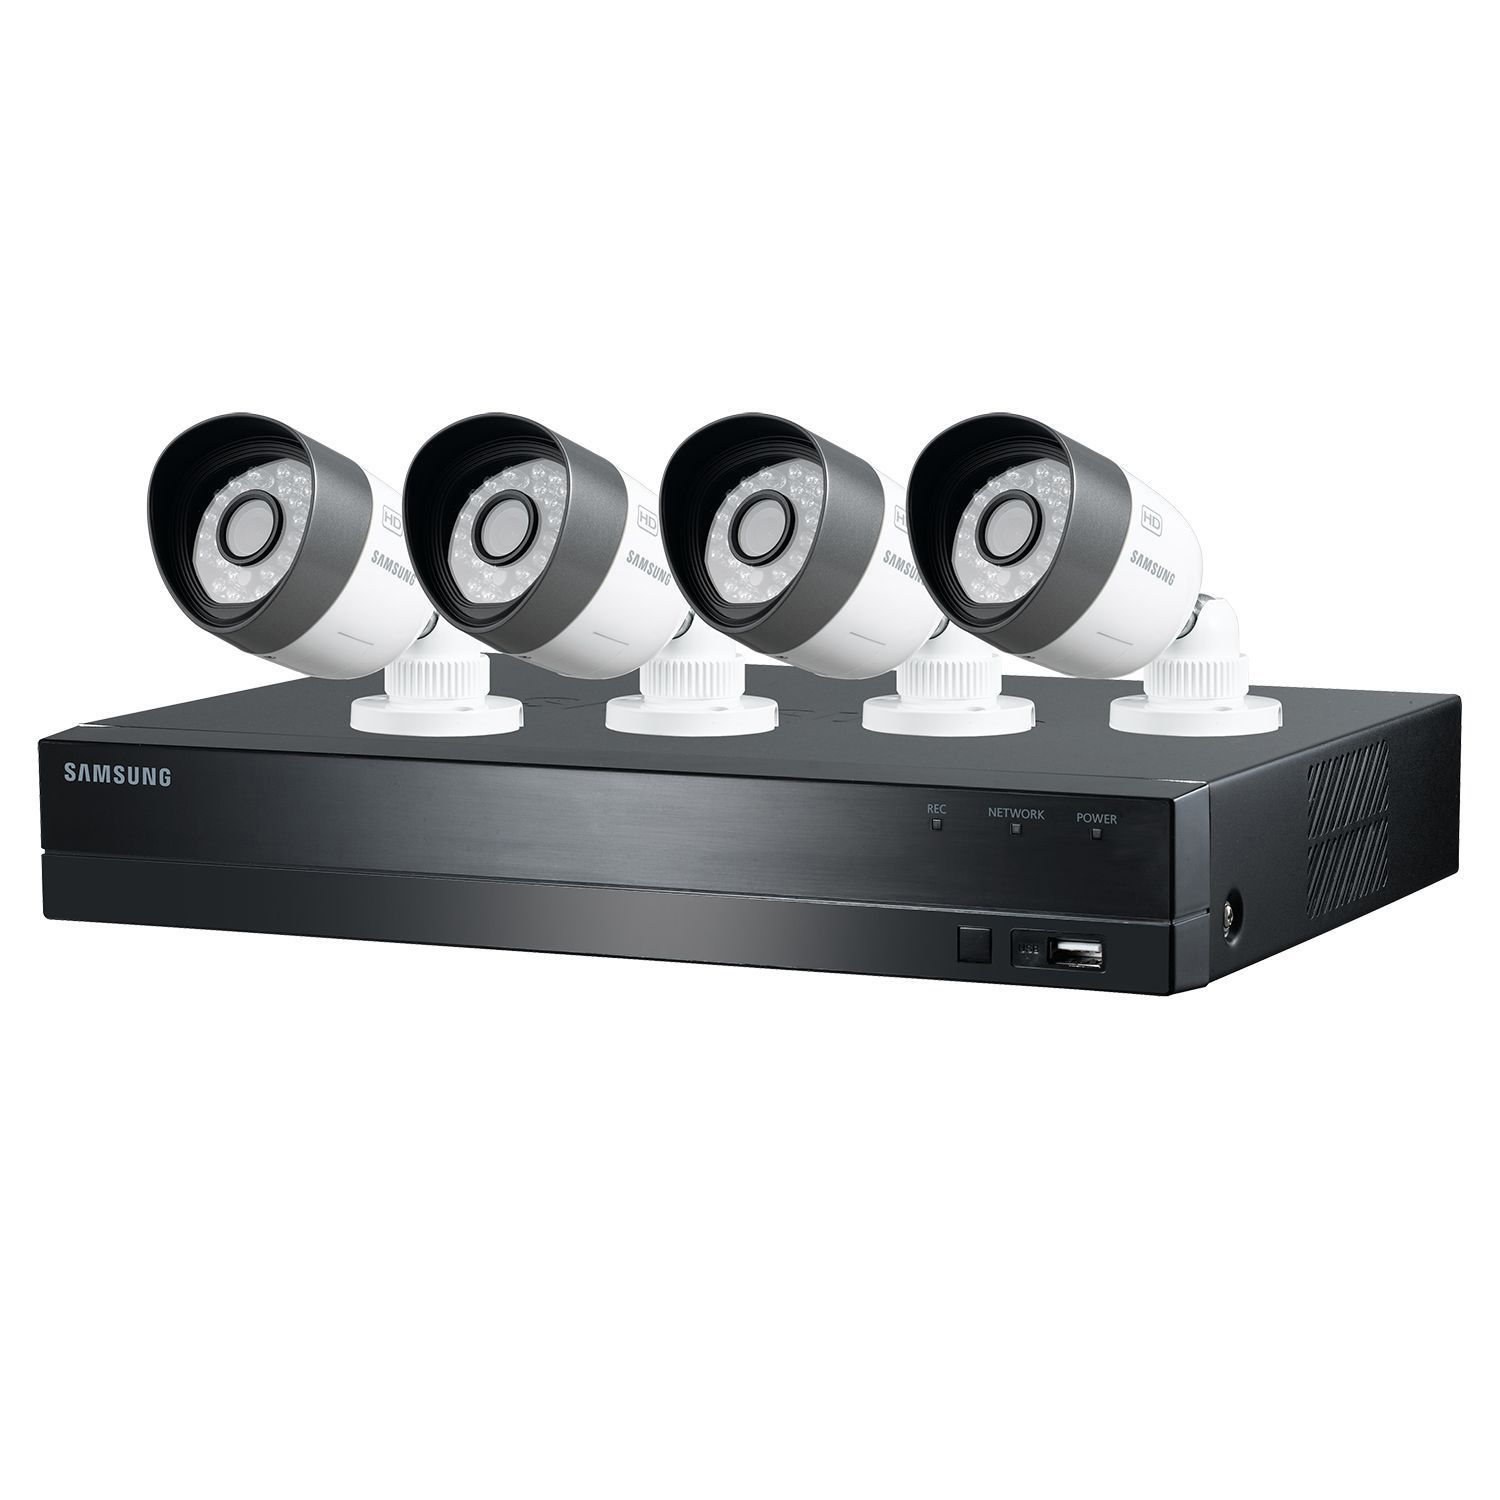 samsung 1tb dvr video security system 720p 4 channel 4 night vision cameras ebay. Black Bedroom Furniture Sets. Home Design Ideas